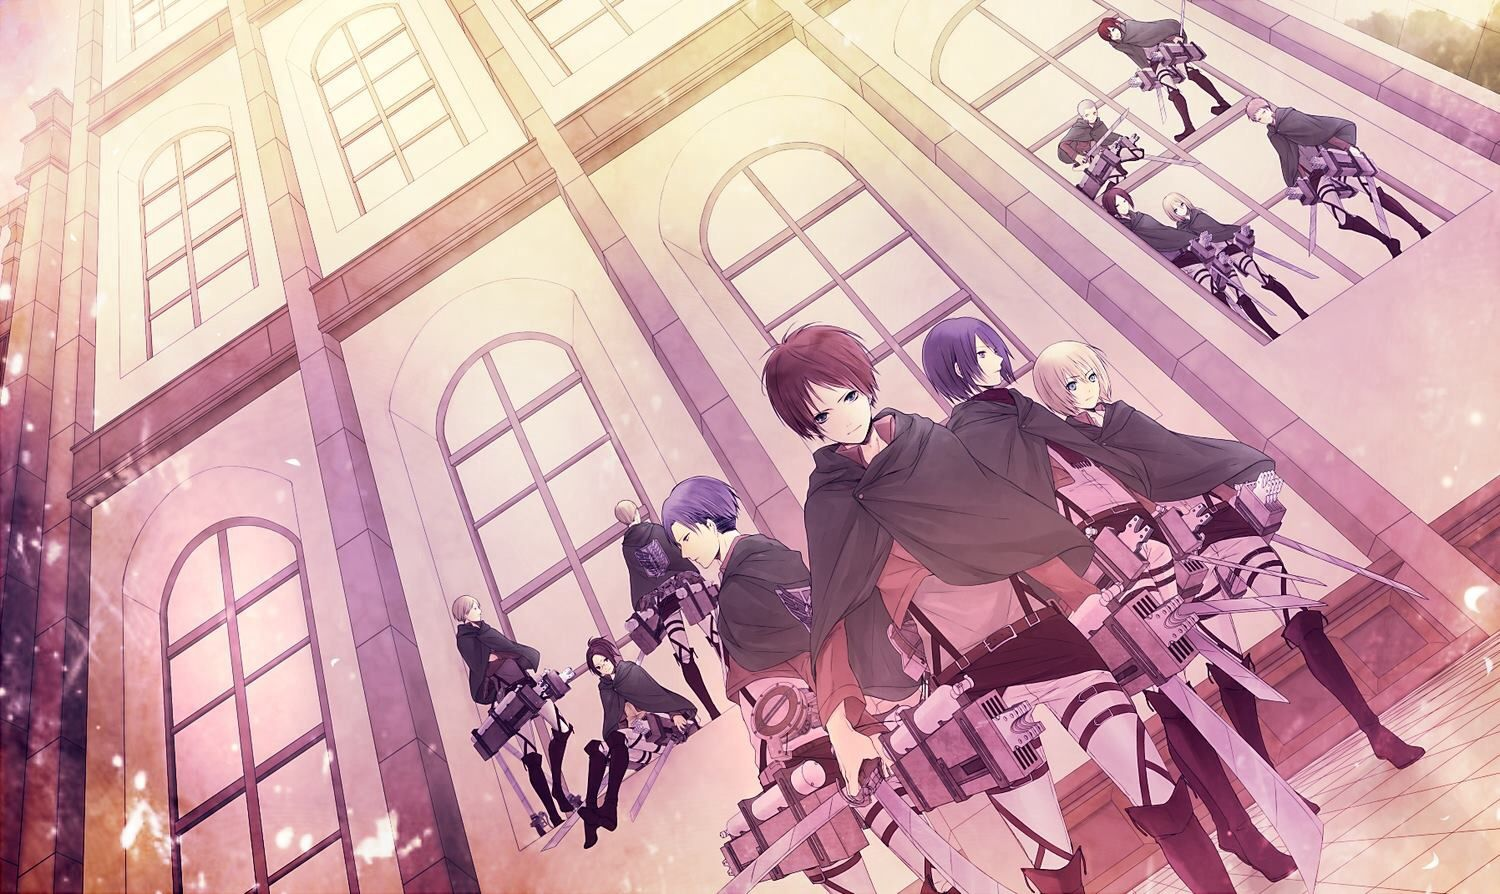 Pin by Haru♚ on ×Attack on Titan× (With images) Attack